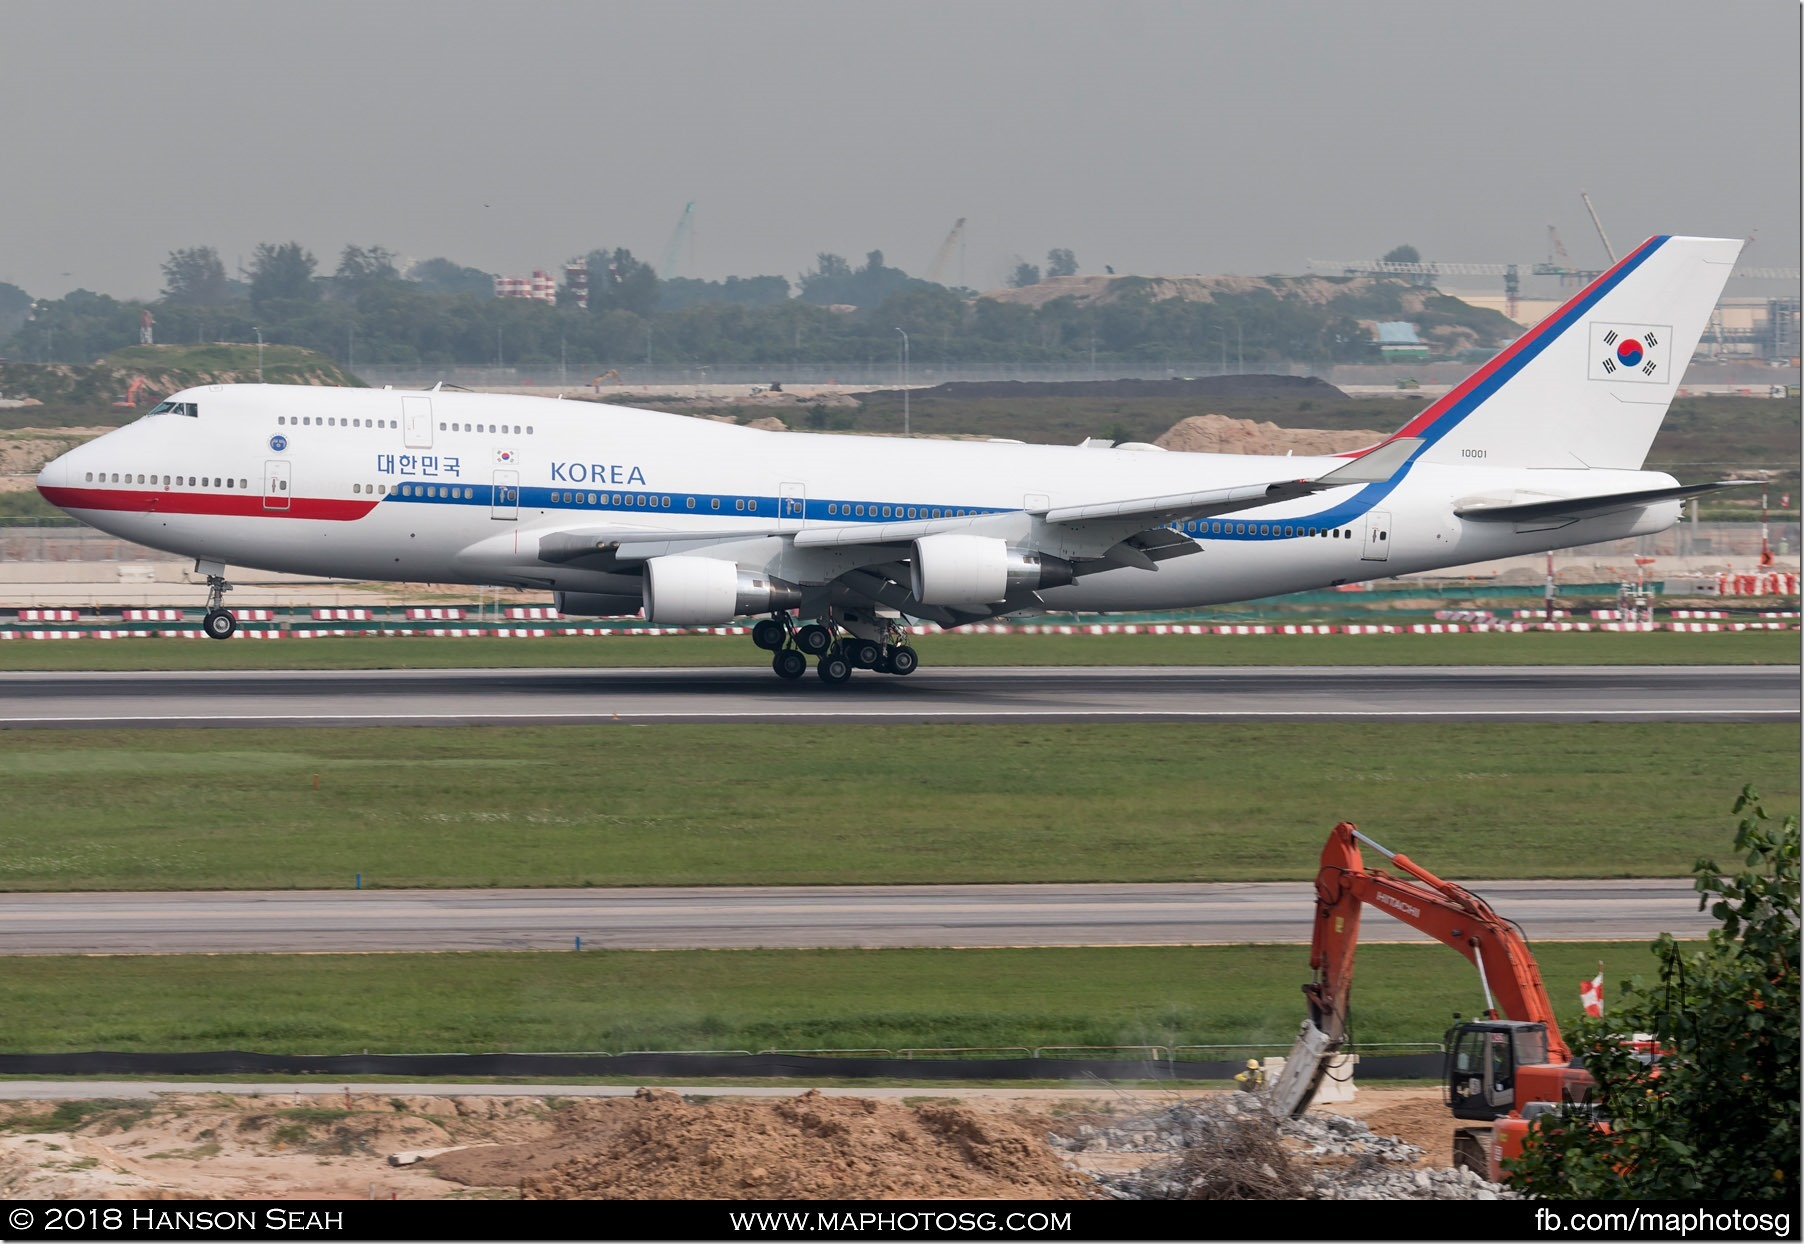 06. Korean Air Force 1